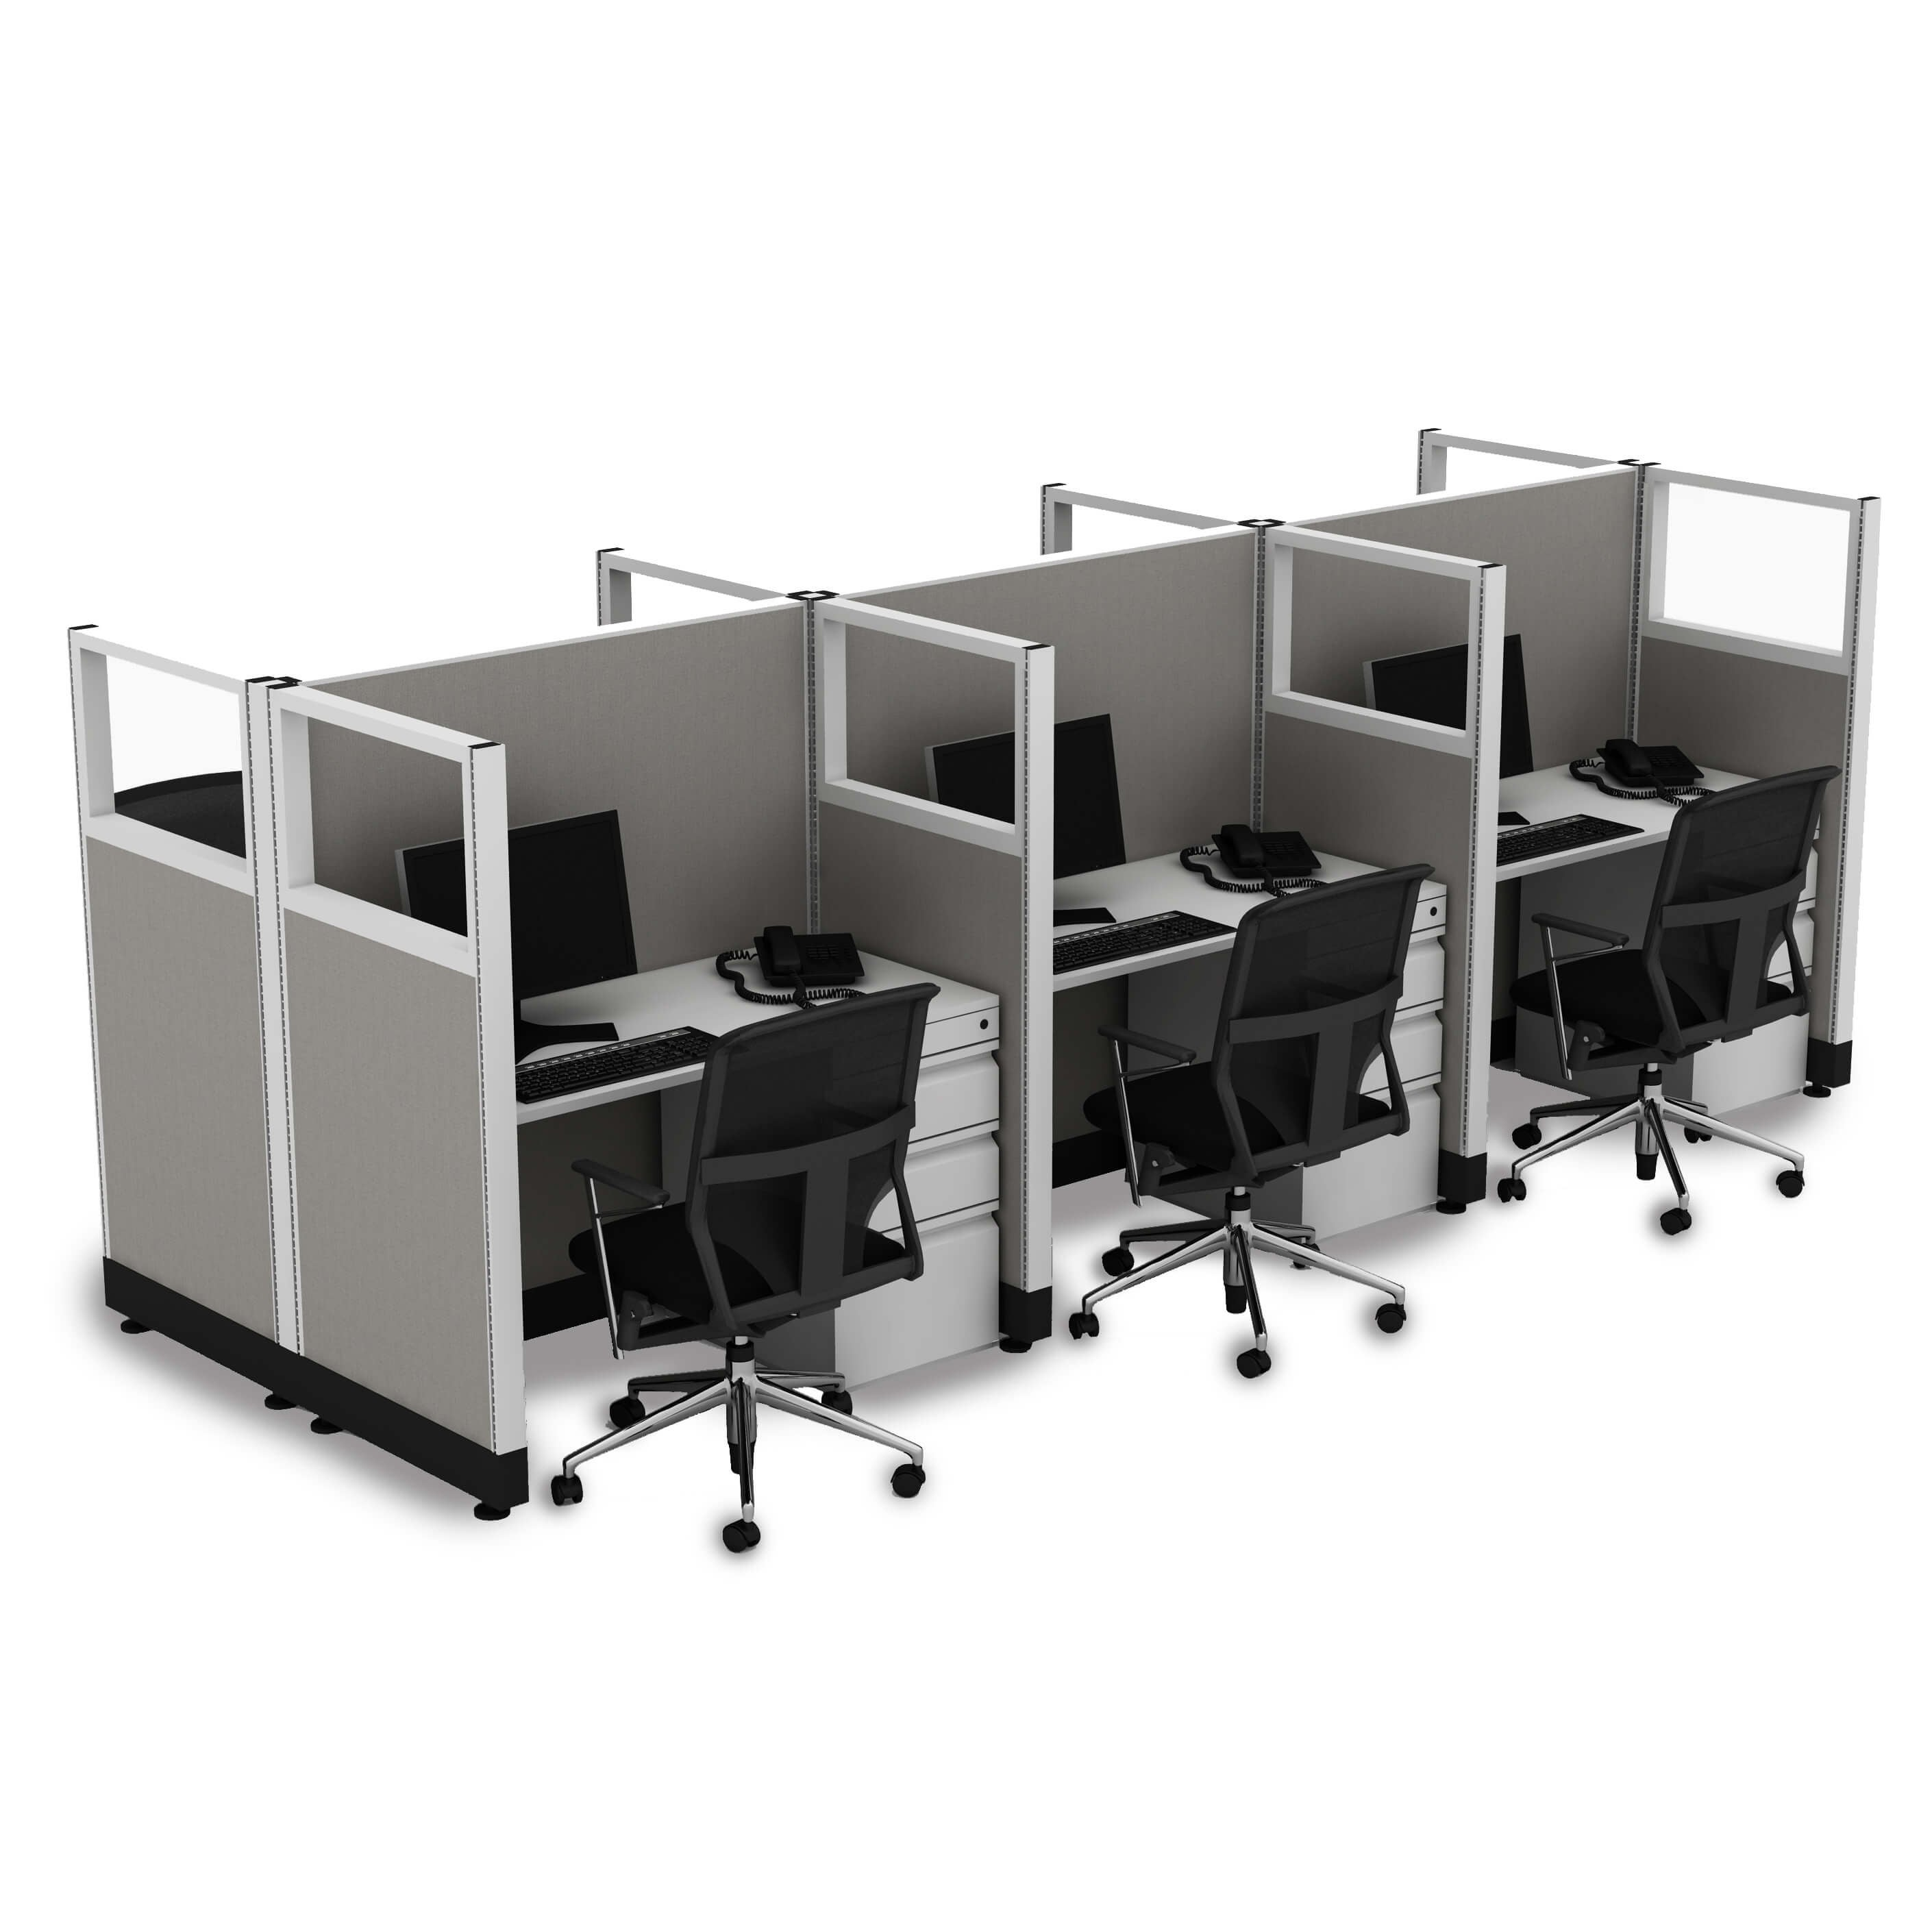 Cubicle Workstations 53H 6pack Cluster Powered (4x4 - Walnut Desk Silver Paint - Assembled)